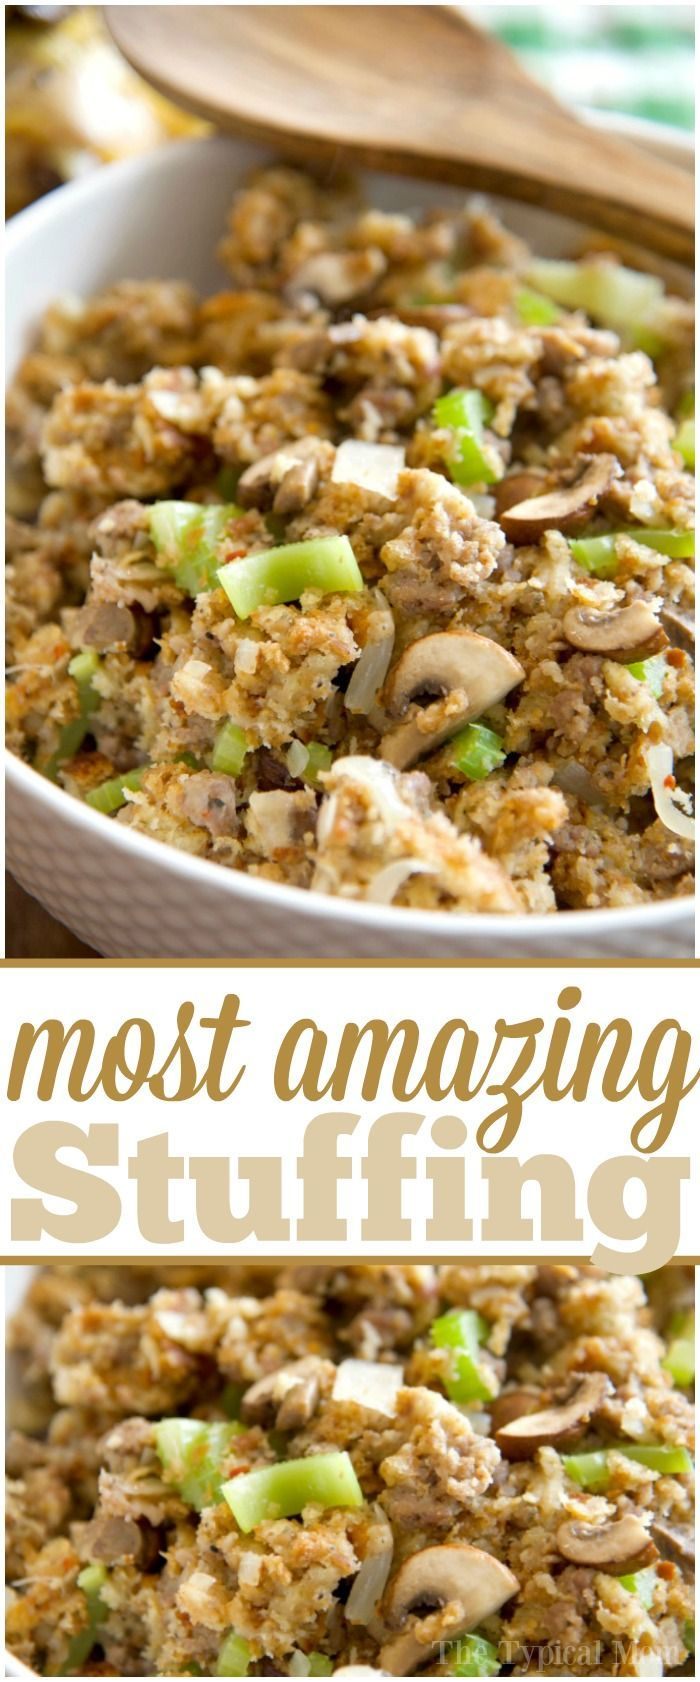 This Pickford stuffing is the MOST amazing stuffing recipe you will ever make! It's so good we make it at Thanksgiving, Easter, and year round! Super easy. via @thetypicalmom